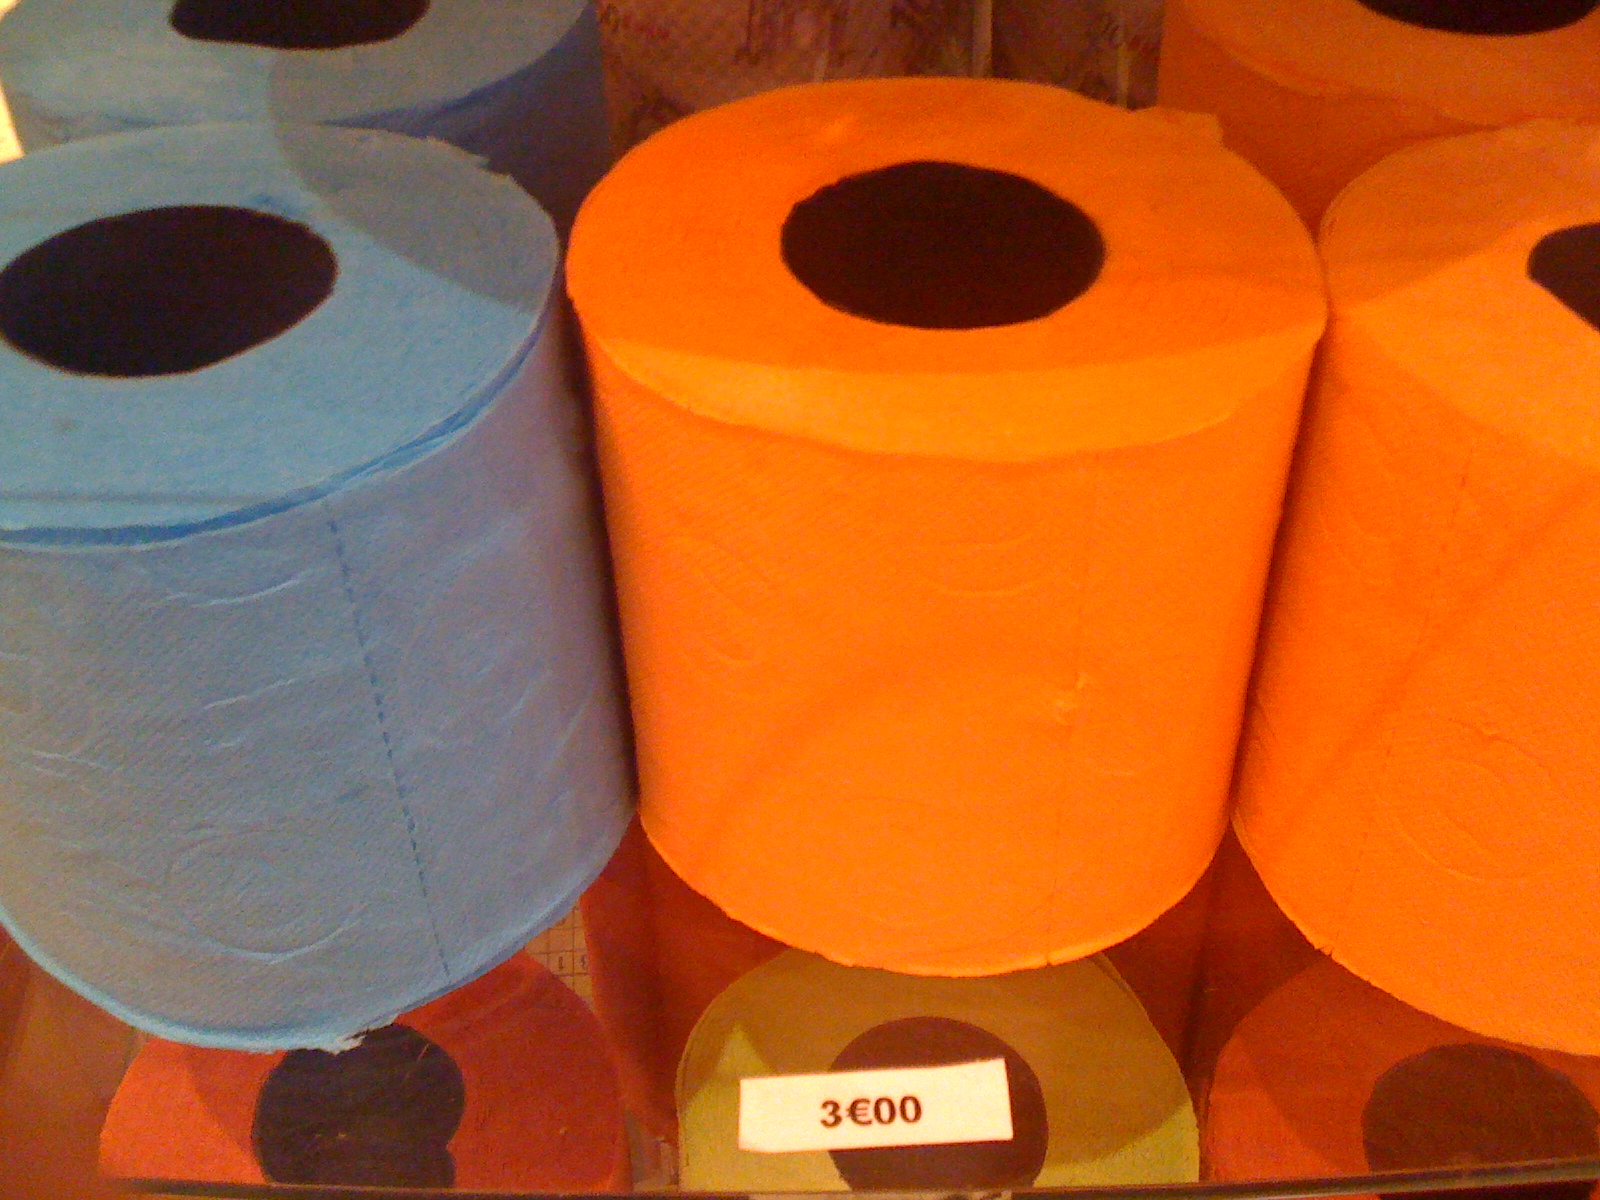 colored toilet paper with 3€ price tag